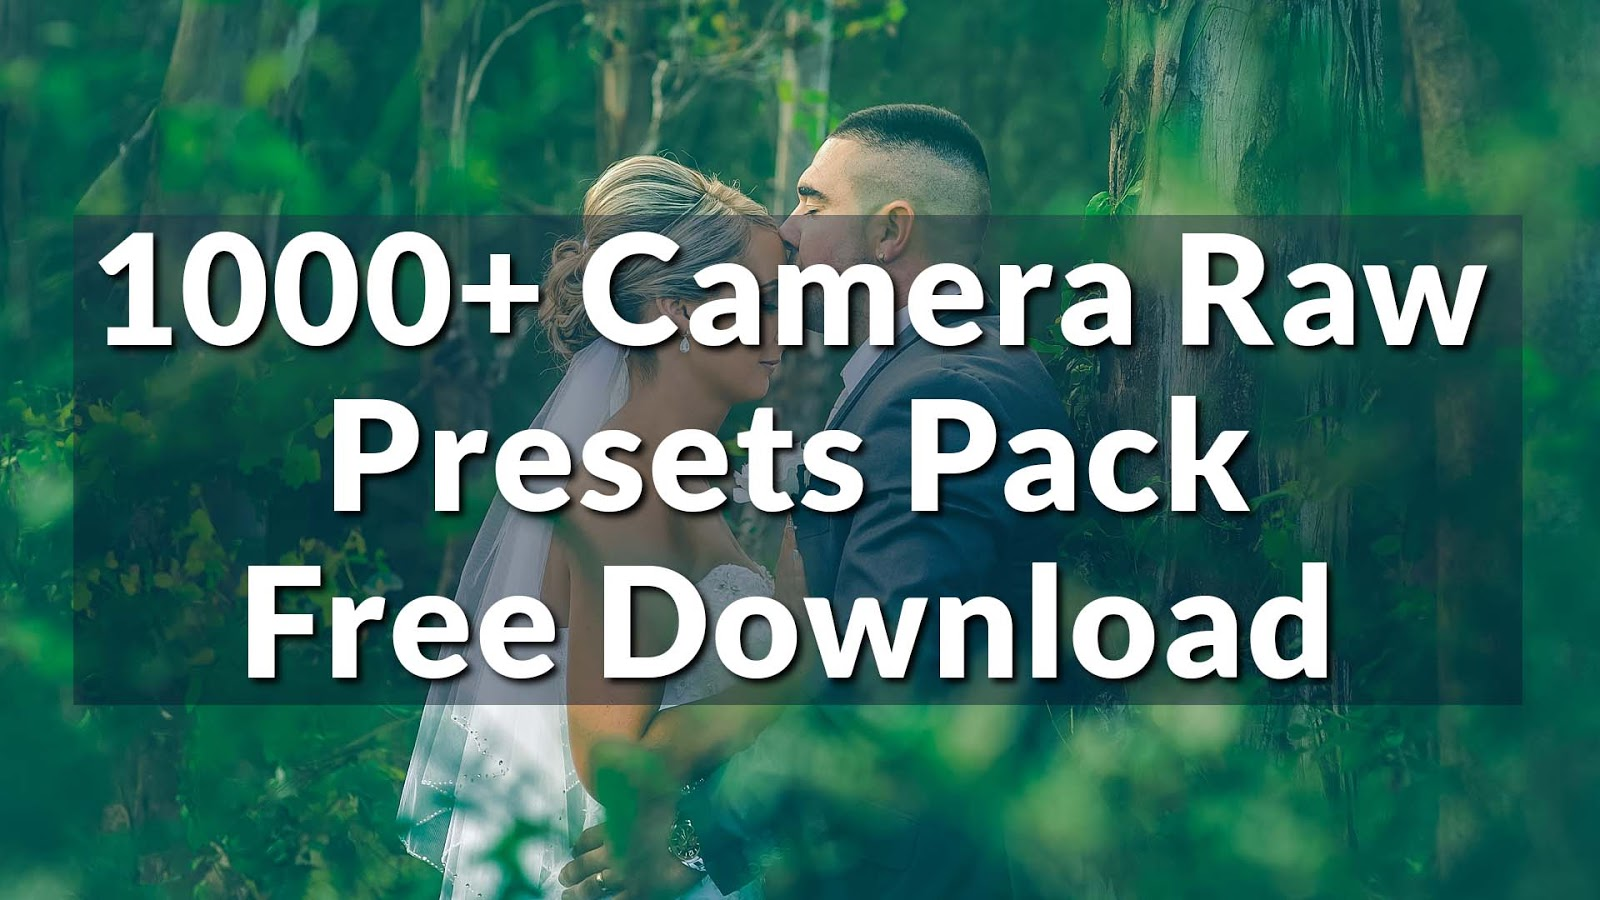 1000+Camera Raw Presets Pack Free Download